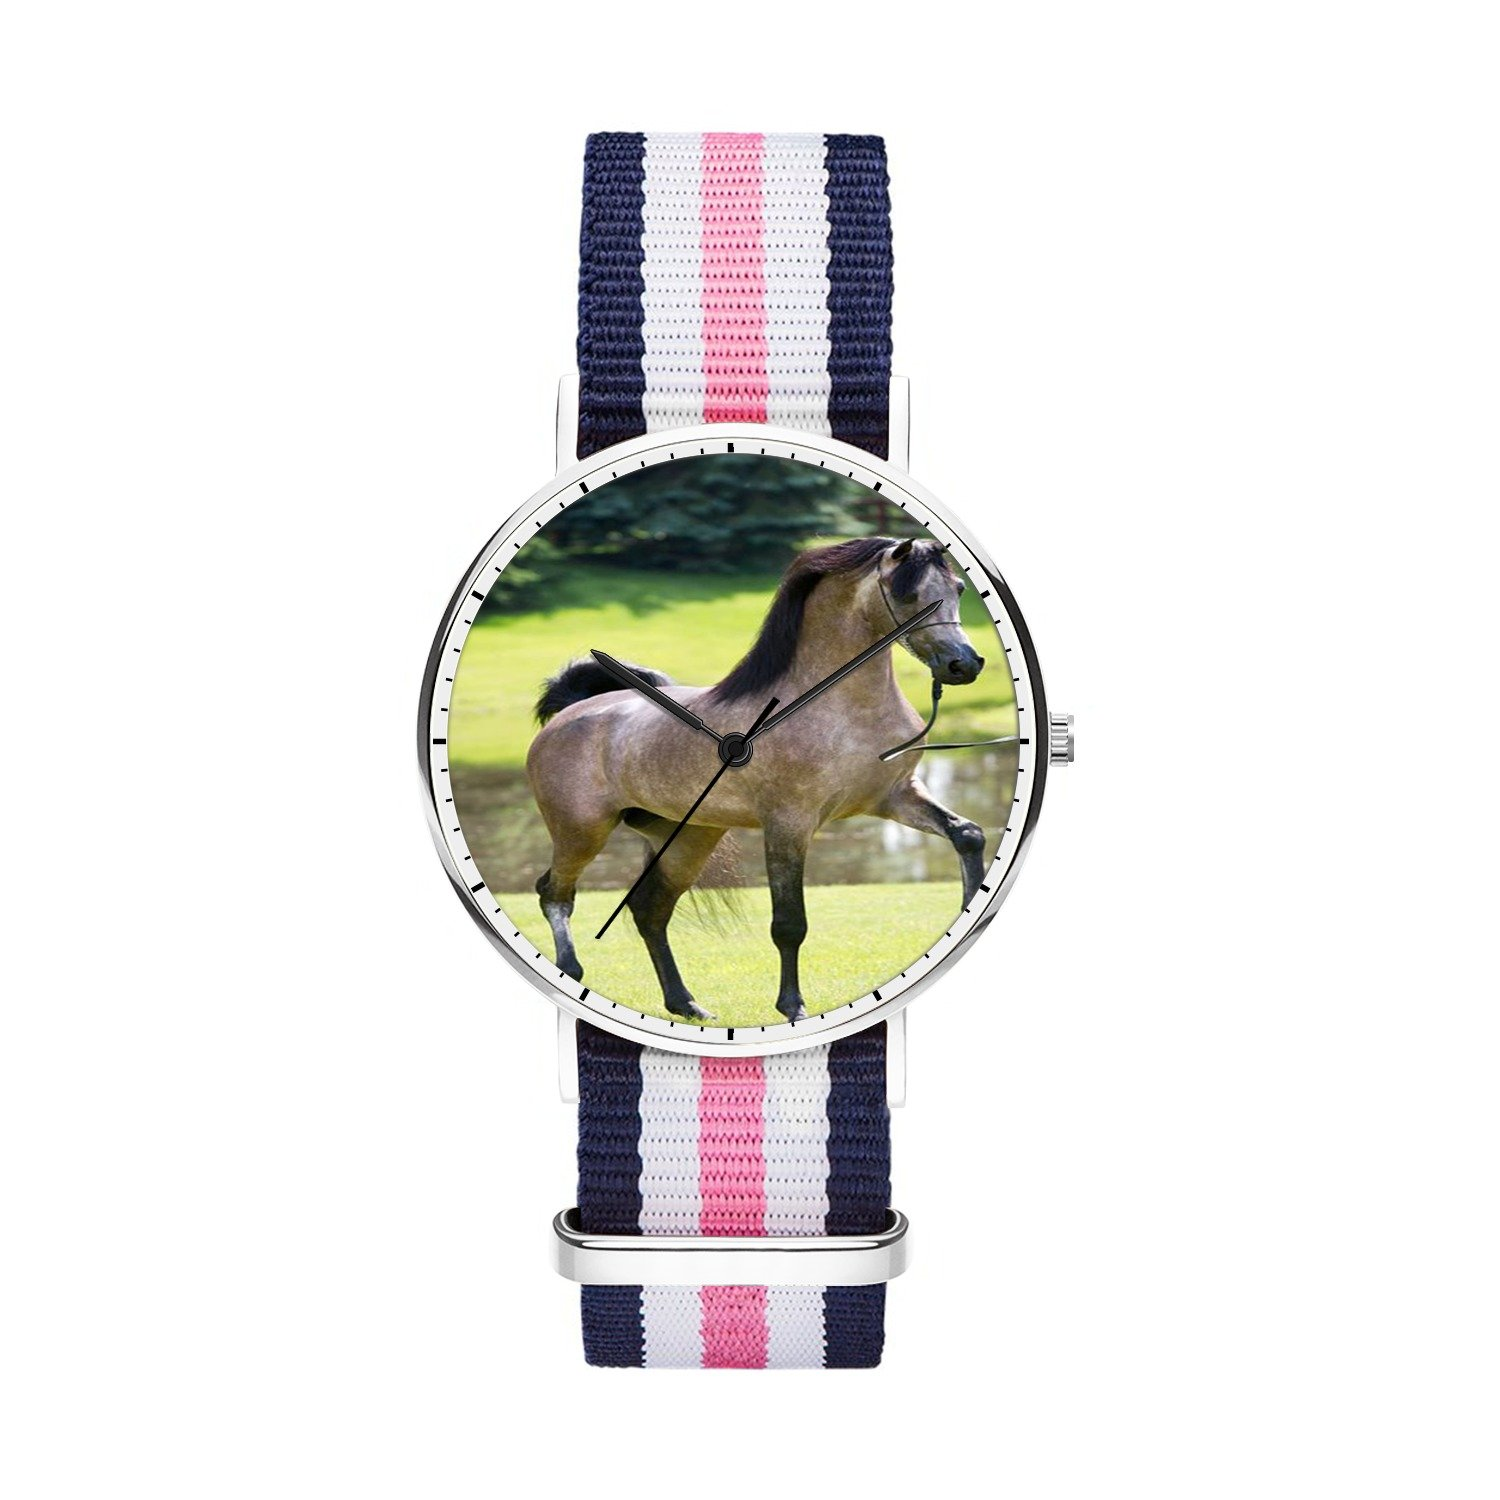 FELOOWSE Girls Watches, Women Watches, Sliver Slim Minimalist Imported Japanese Quartz PracticalWaterproof Unique Personalized Youth Fashion Design Cute Watches for Women.- Horse